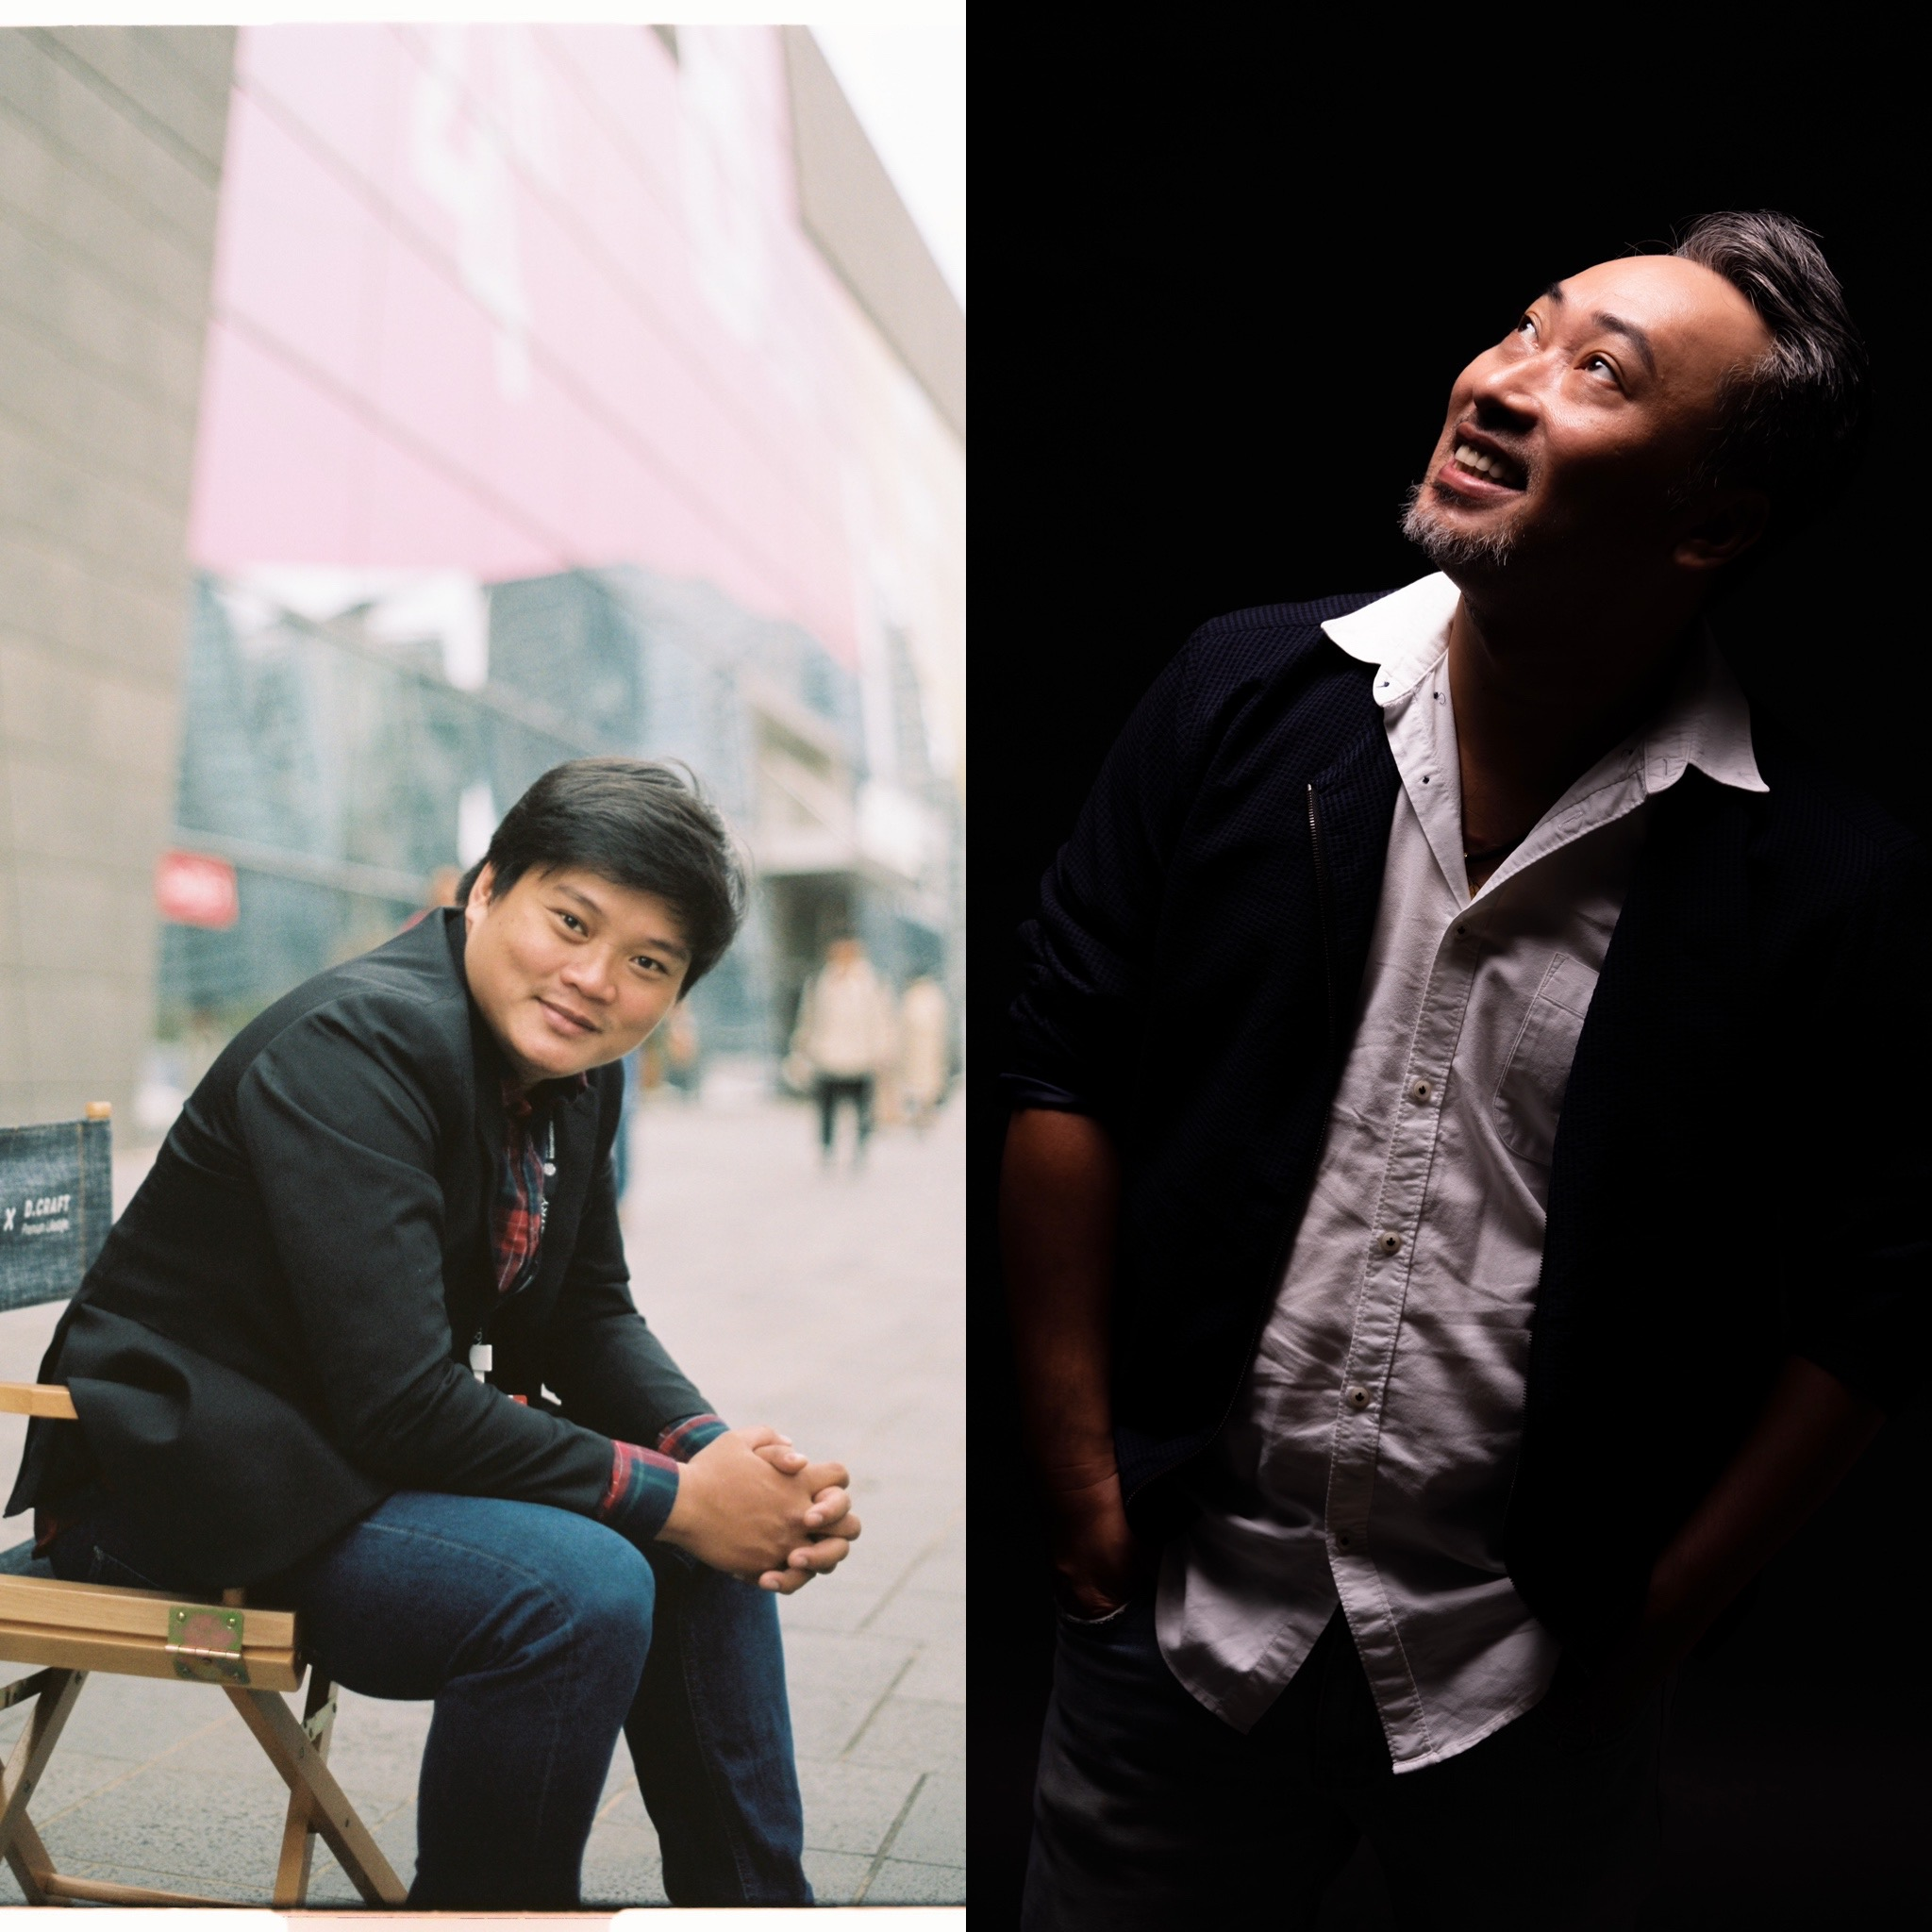 Tran Thanh Huy (left), director of 'Rom,' and Nguyen Quang Dung, director and producer of 'Tiec trang mau.'